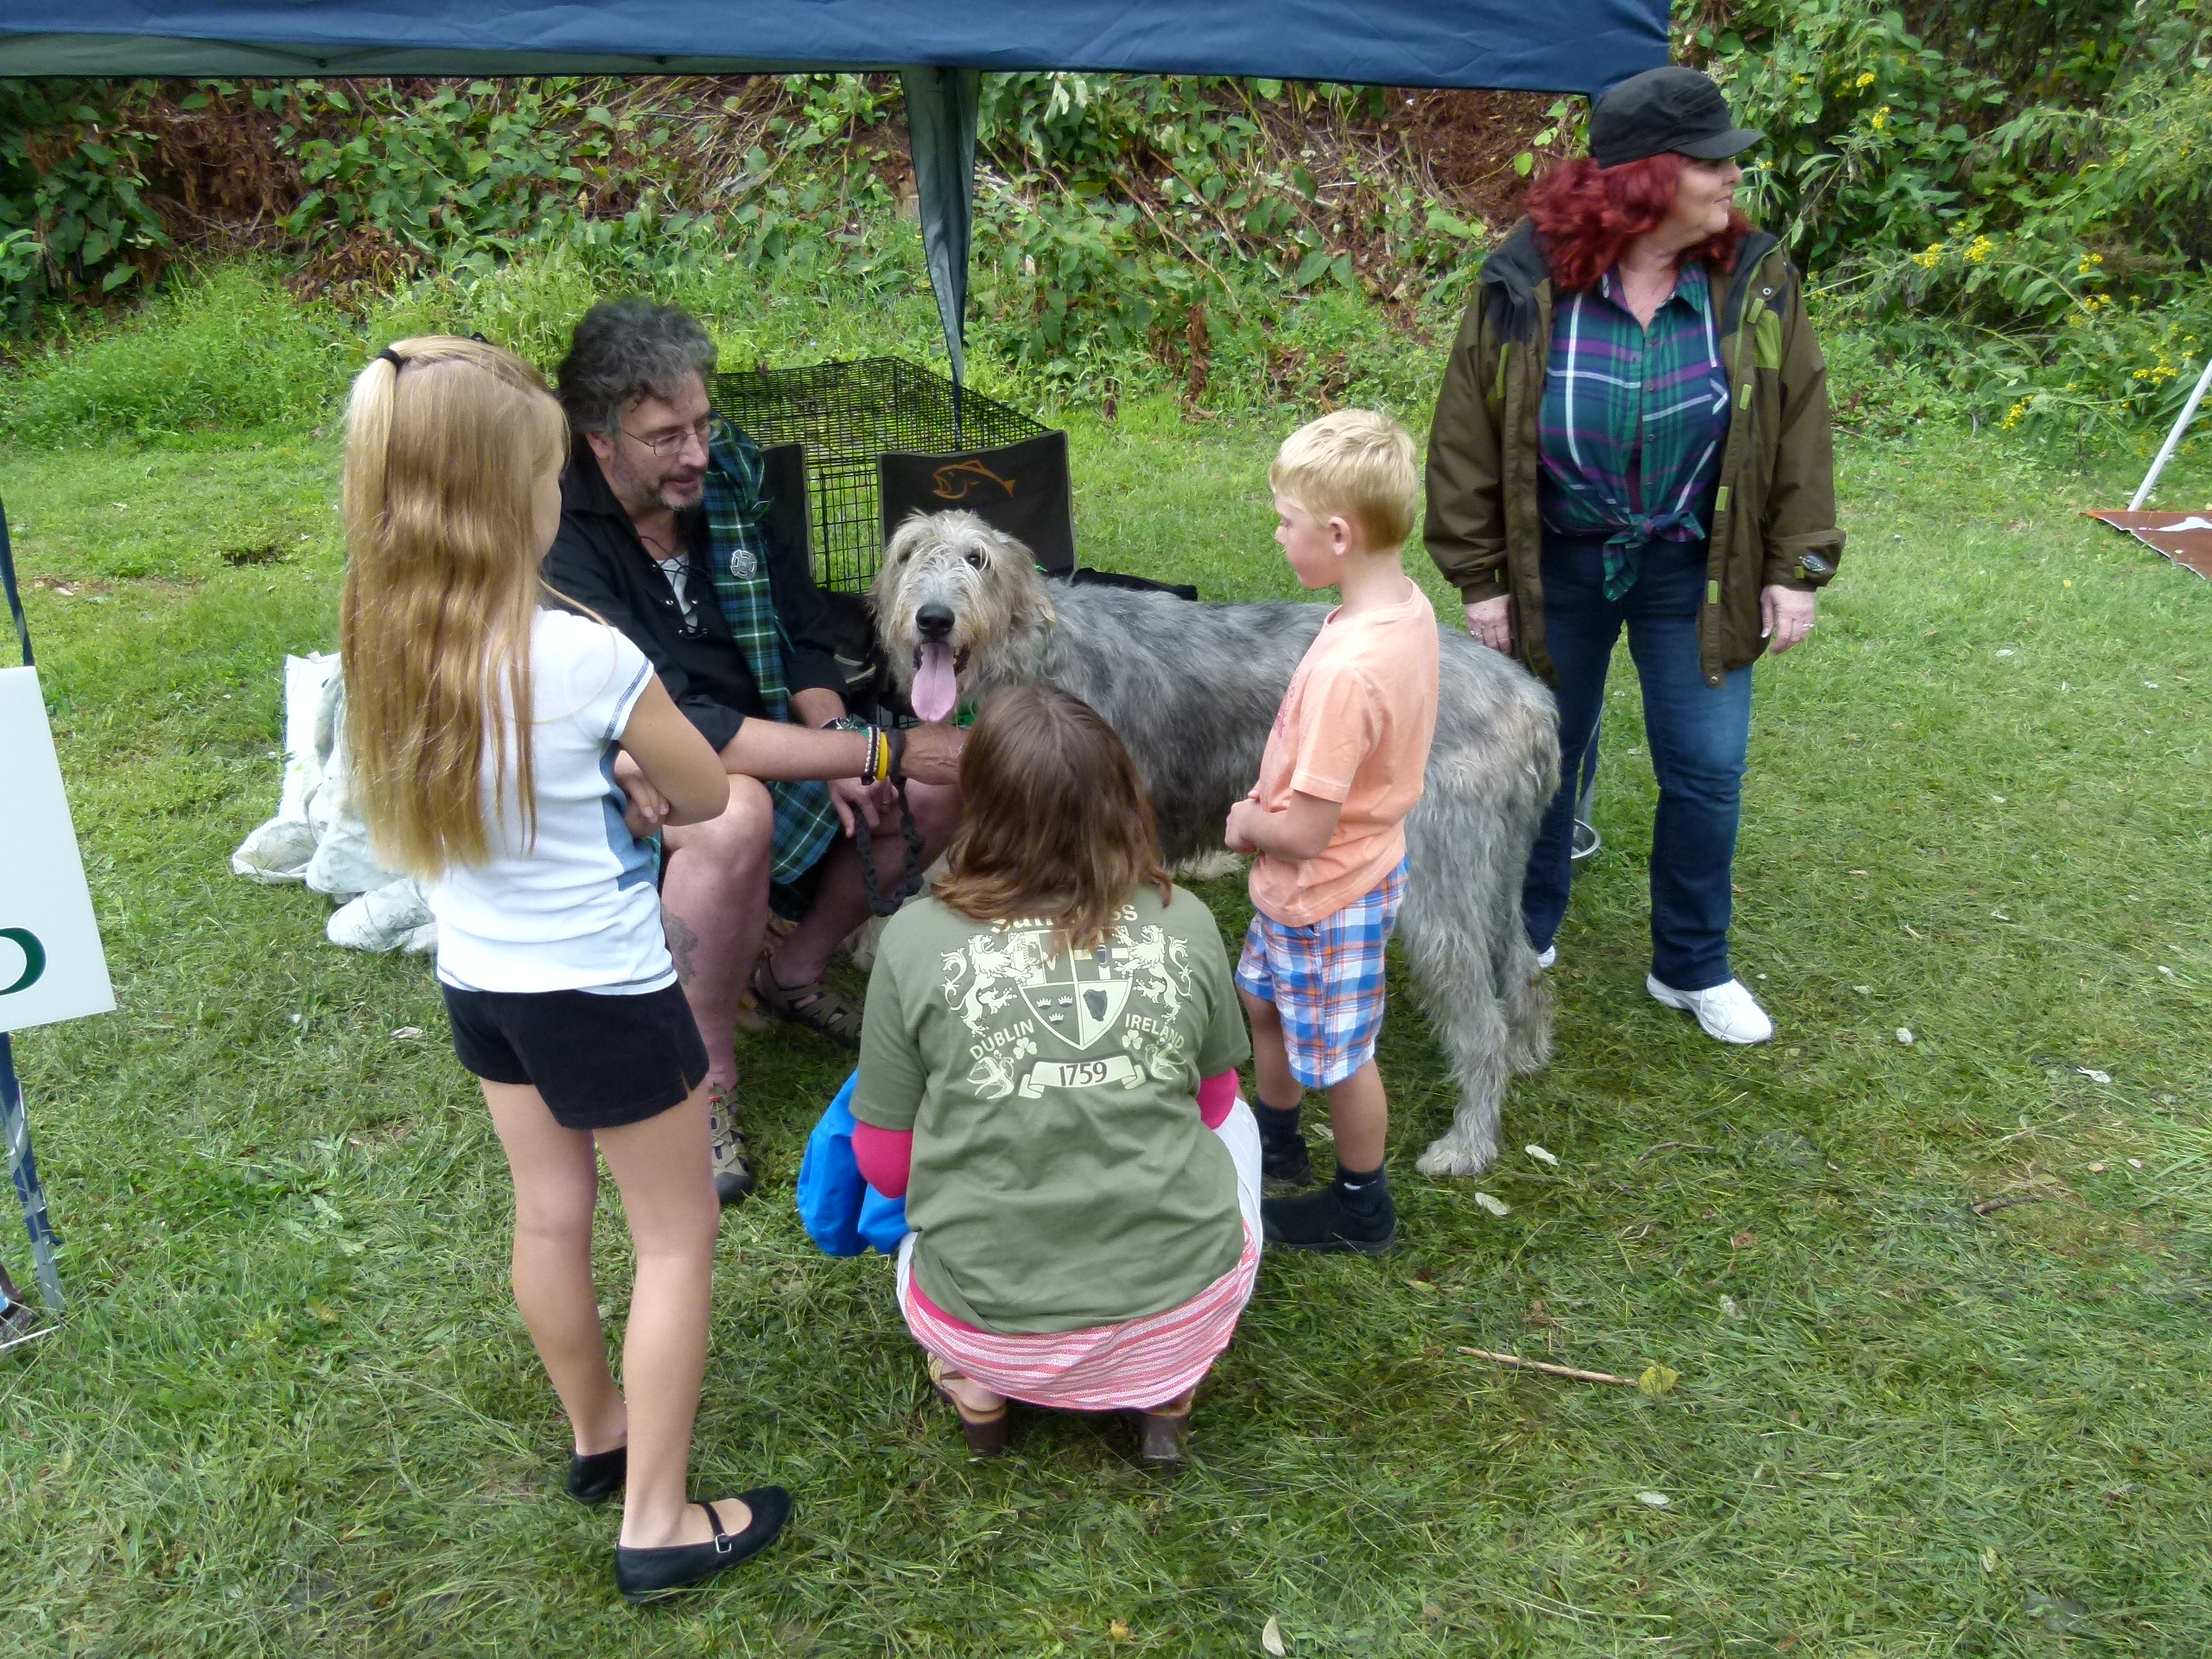 Irish wolfhounds owner Joel Black offers Murphy to the kids for petting.